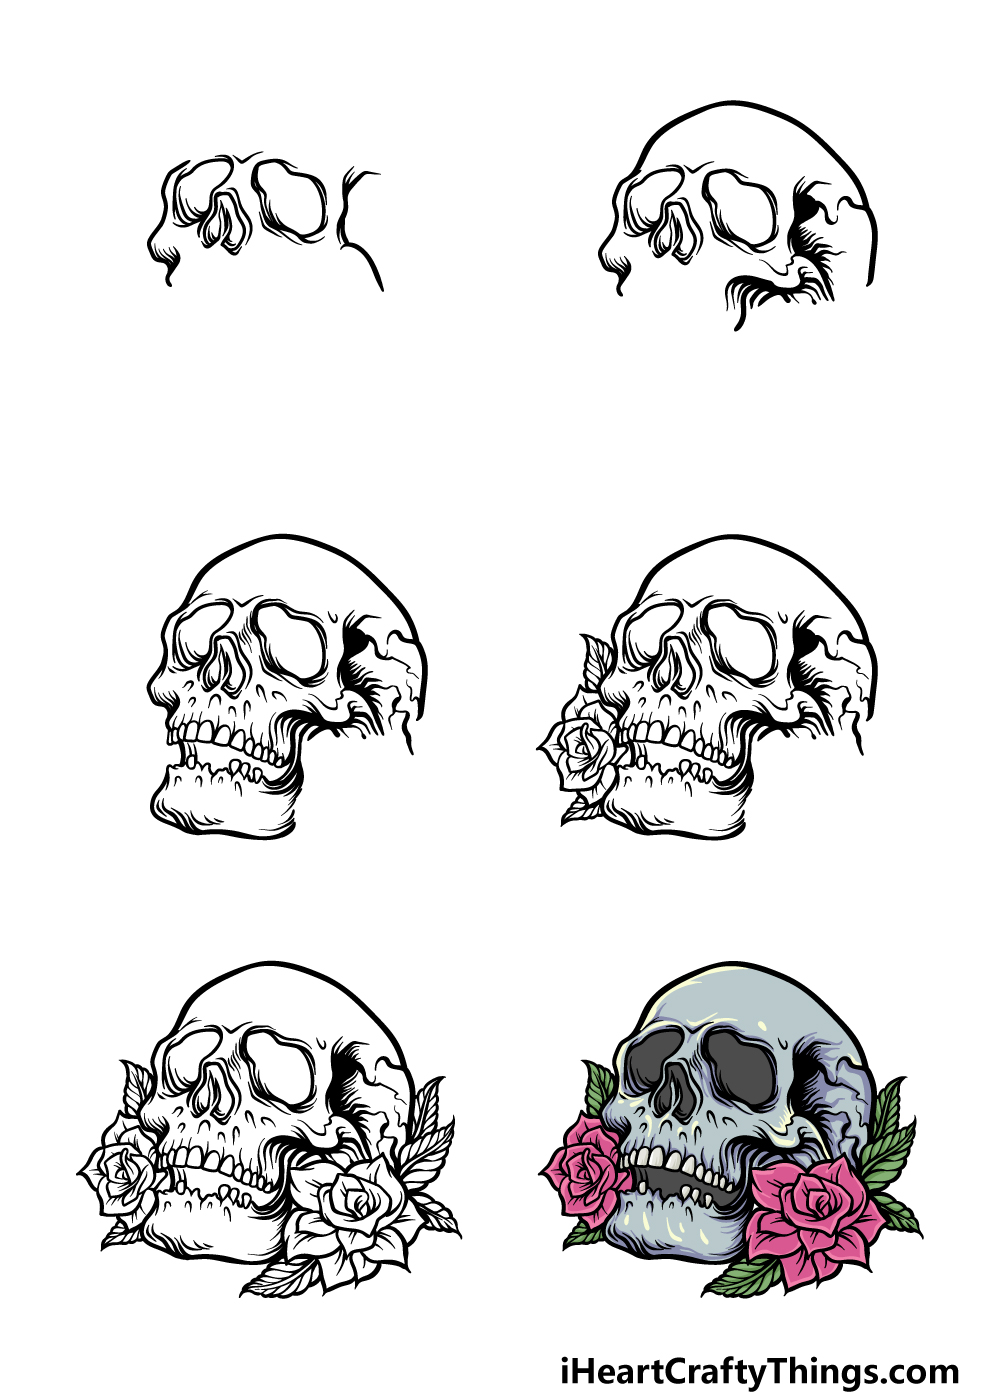 How To Draw A Rose Skull in 6 steps